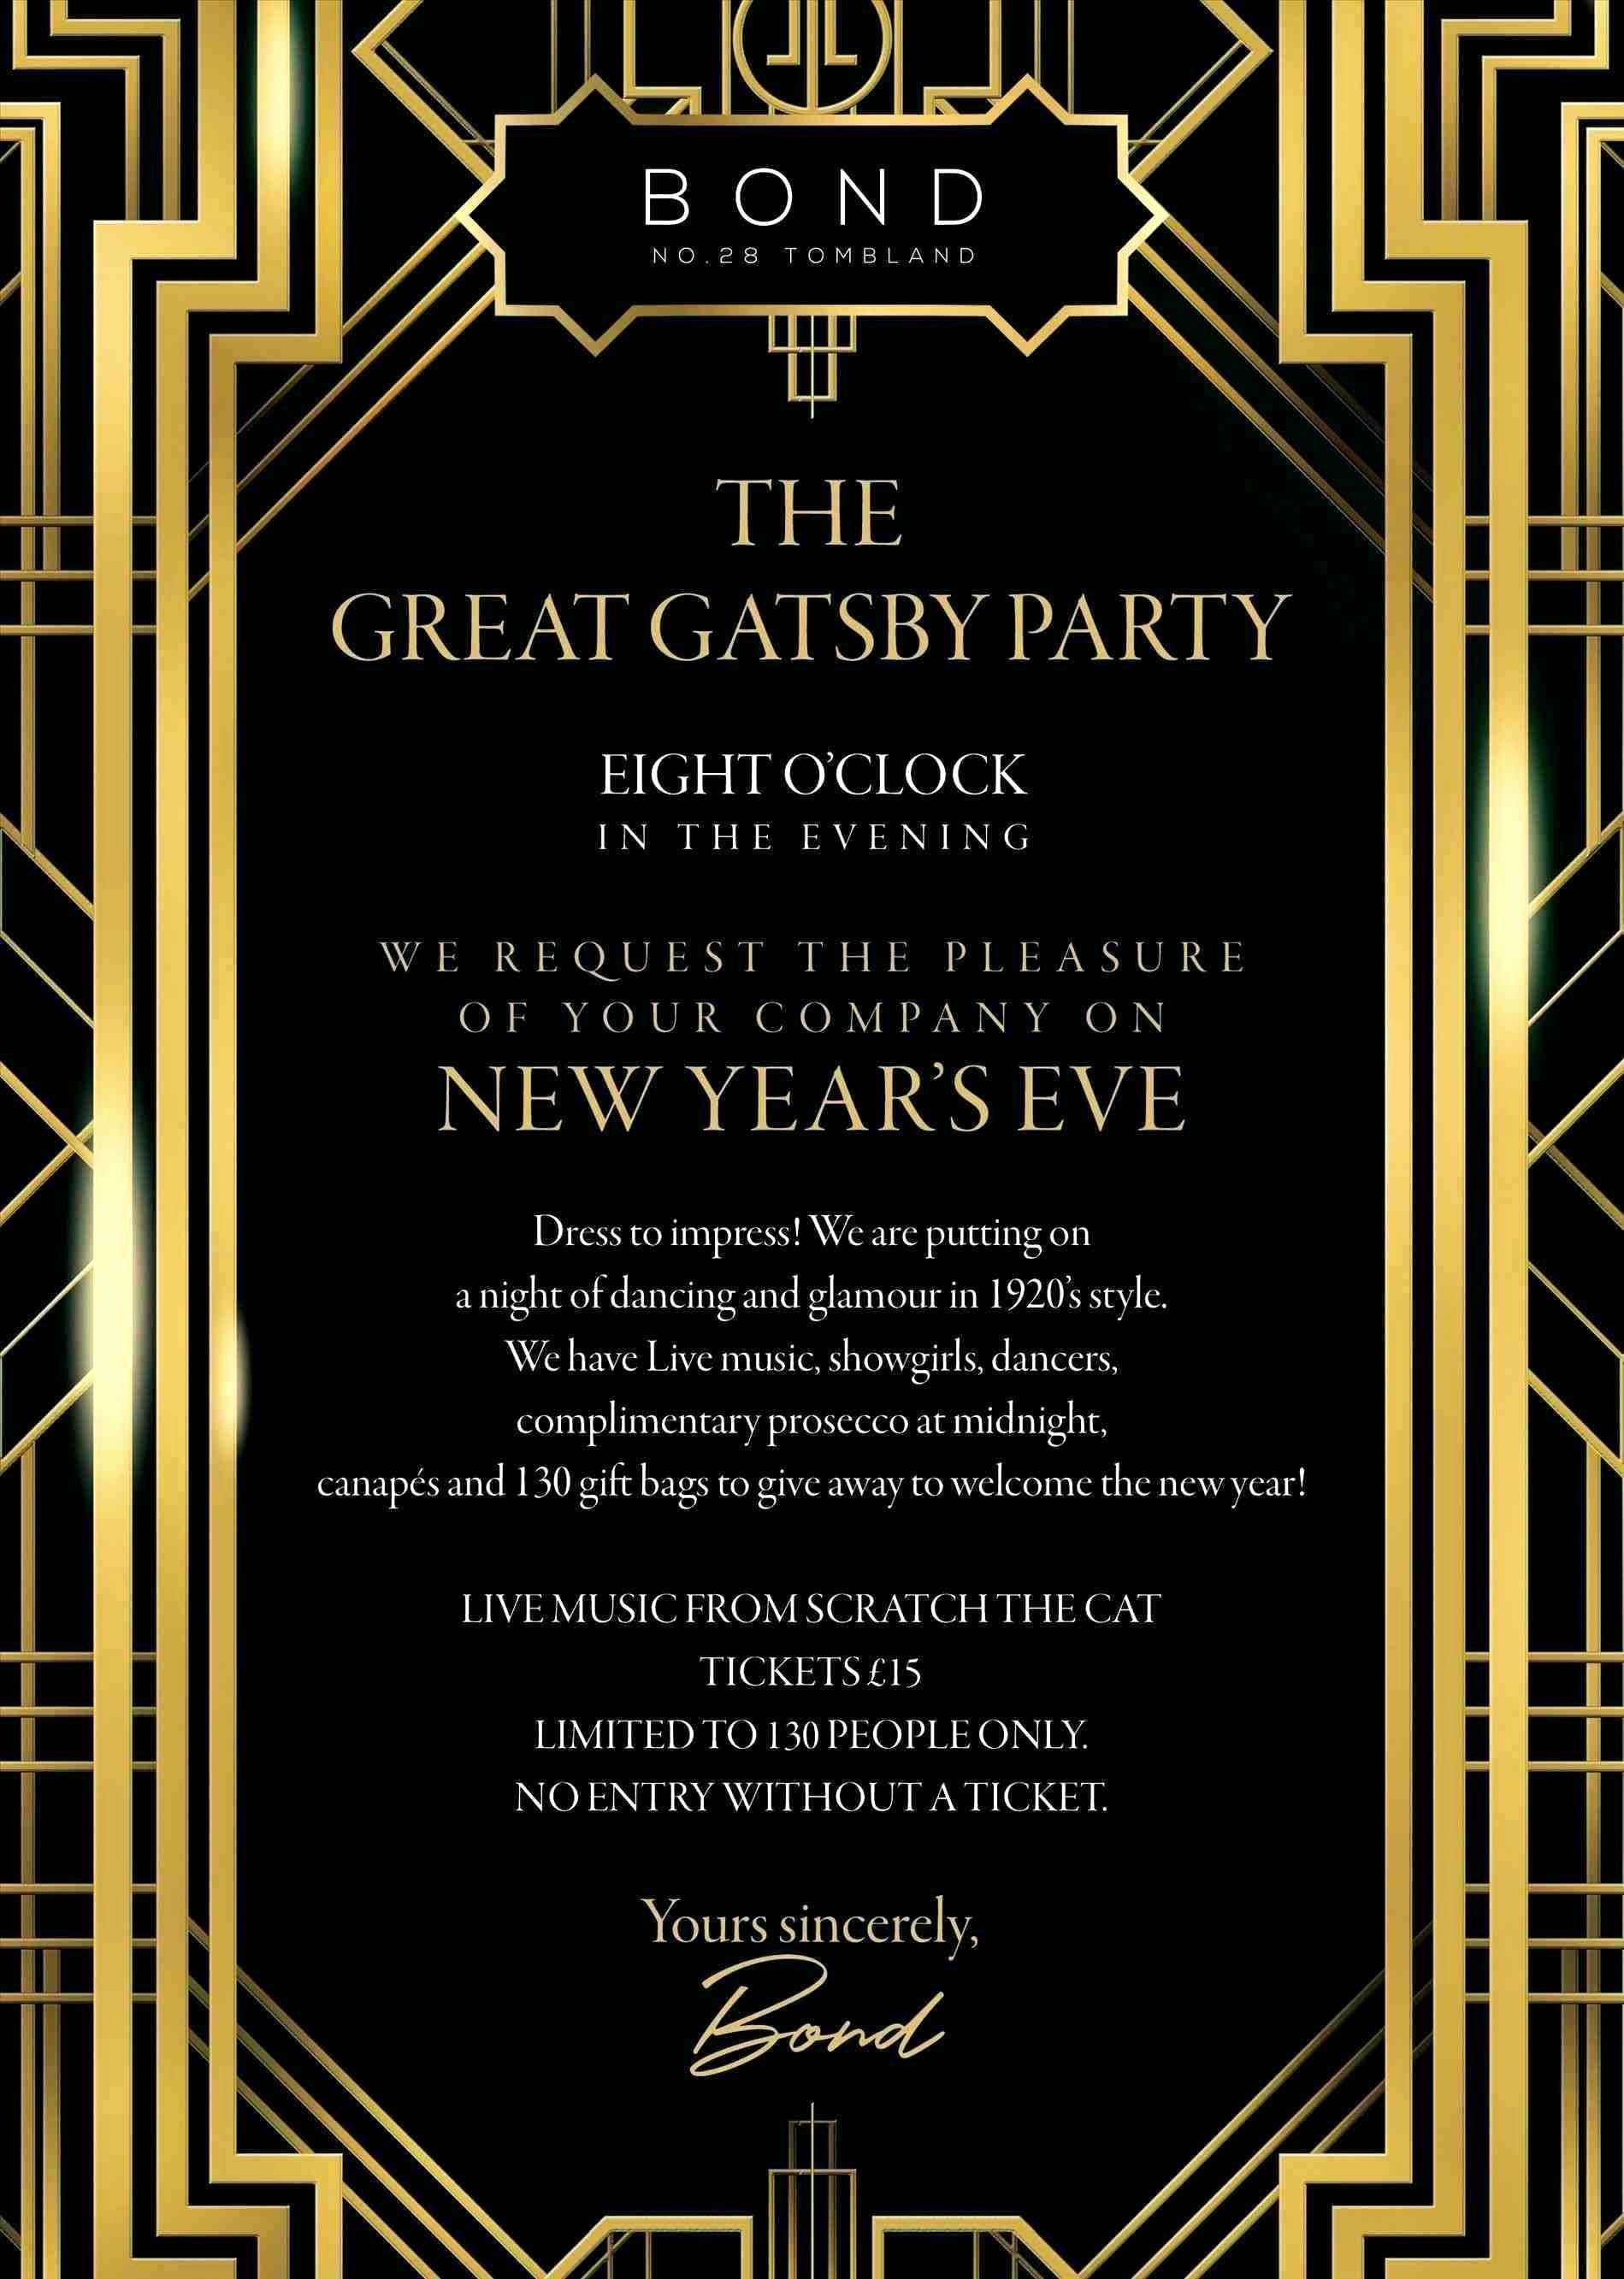 Great Gatsby Party Invitation Templates Beautiful Great Gatsby Party Invitation Template Free Gatsby Invitations Great Gatsby Invitation Party Invite Template